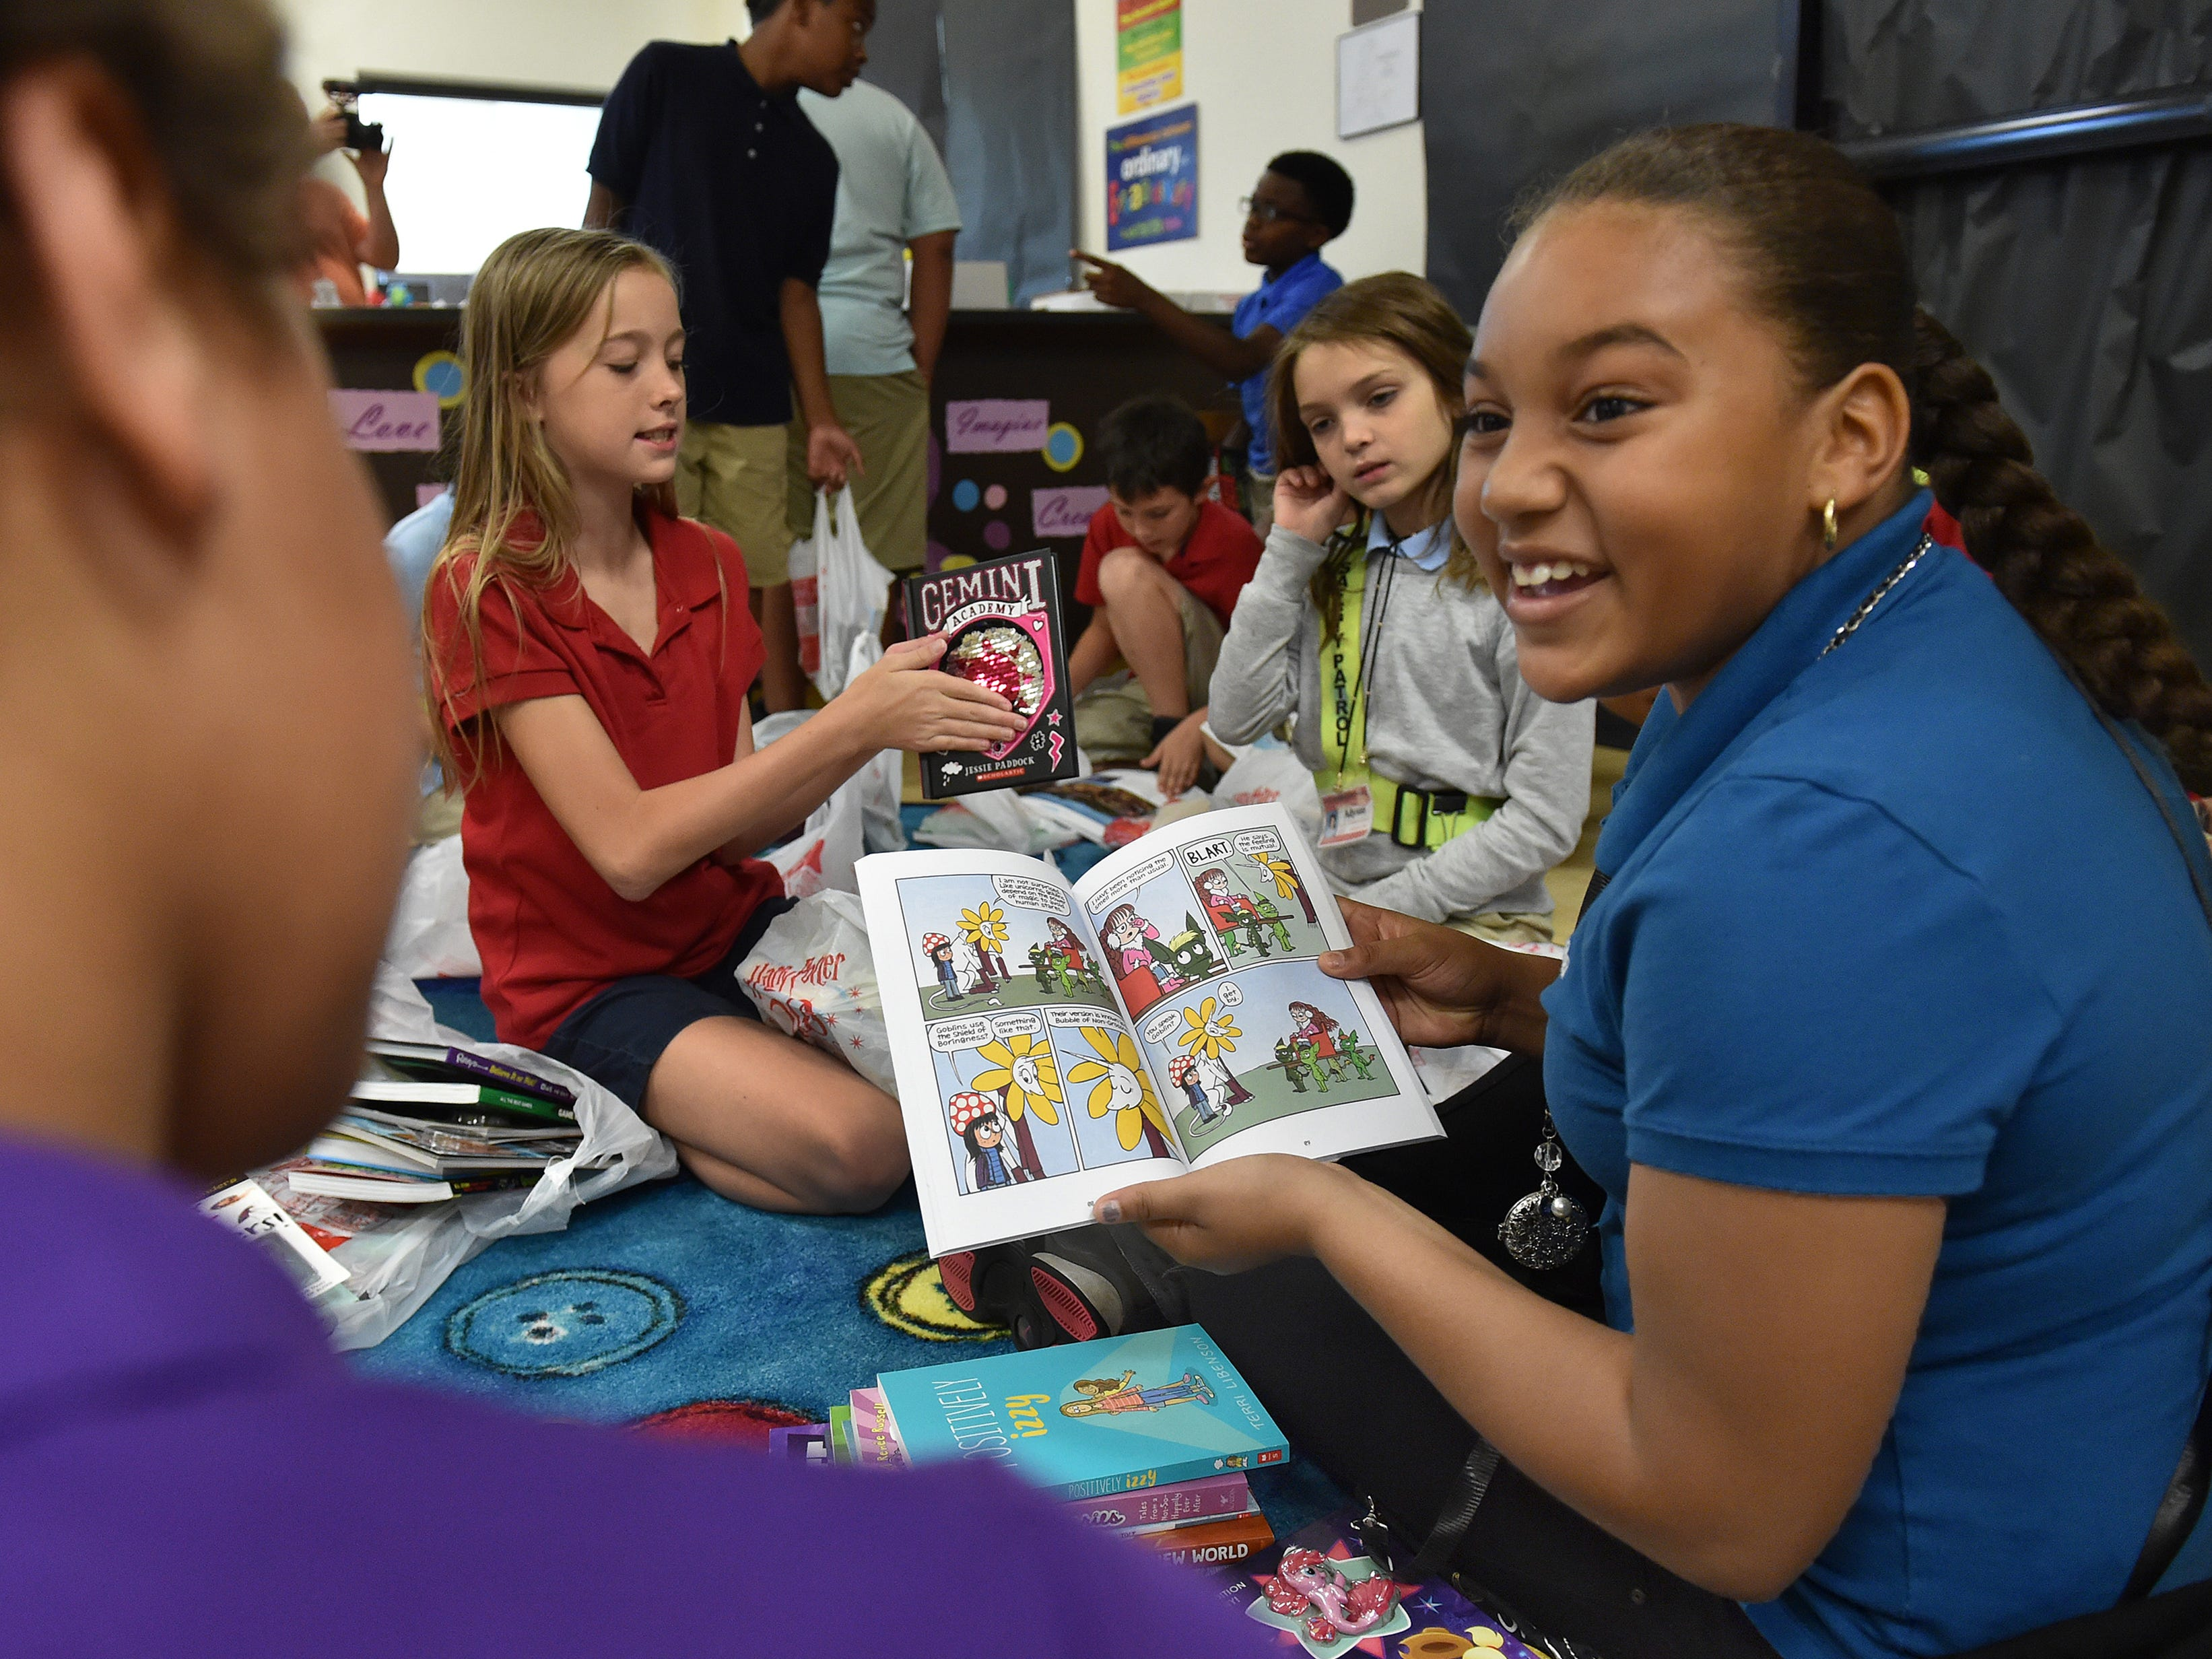 """Beyonka Florez, 10, (right) shows off a page of one of her new books to friend Aanyia Poindexter, 10, after the group of fifth grade students selected eleven new books each during Vero Beach Elementary School's Scholastic Book Magic event on Monday, October 1, 2018, inside the media center. """"It creates an experience for kids that they can be tied to emotionally forever,"""" said Cynthia Emerson, Principal at Vero Beach Elementary. """"By making this experience for them they are always going to have this positive emotional response to reading and it's giving them the actual tools that they can use at their houses to build on a foundation of literacy."""""""